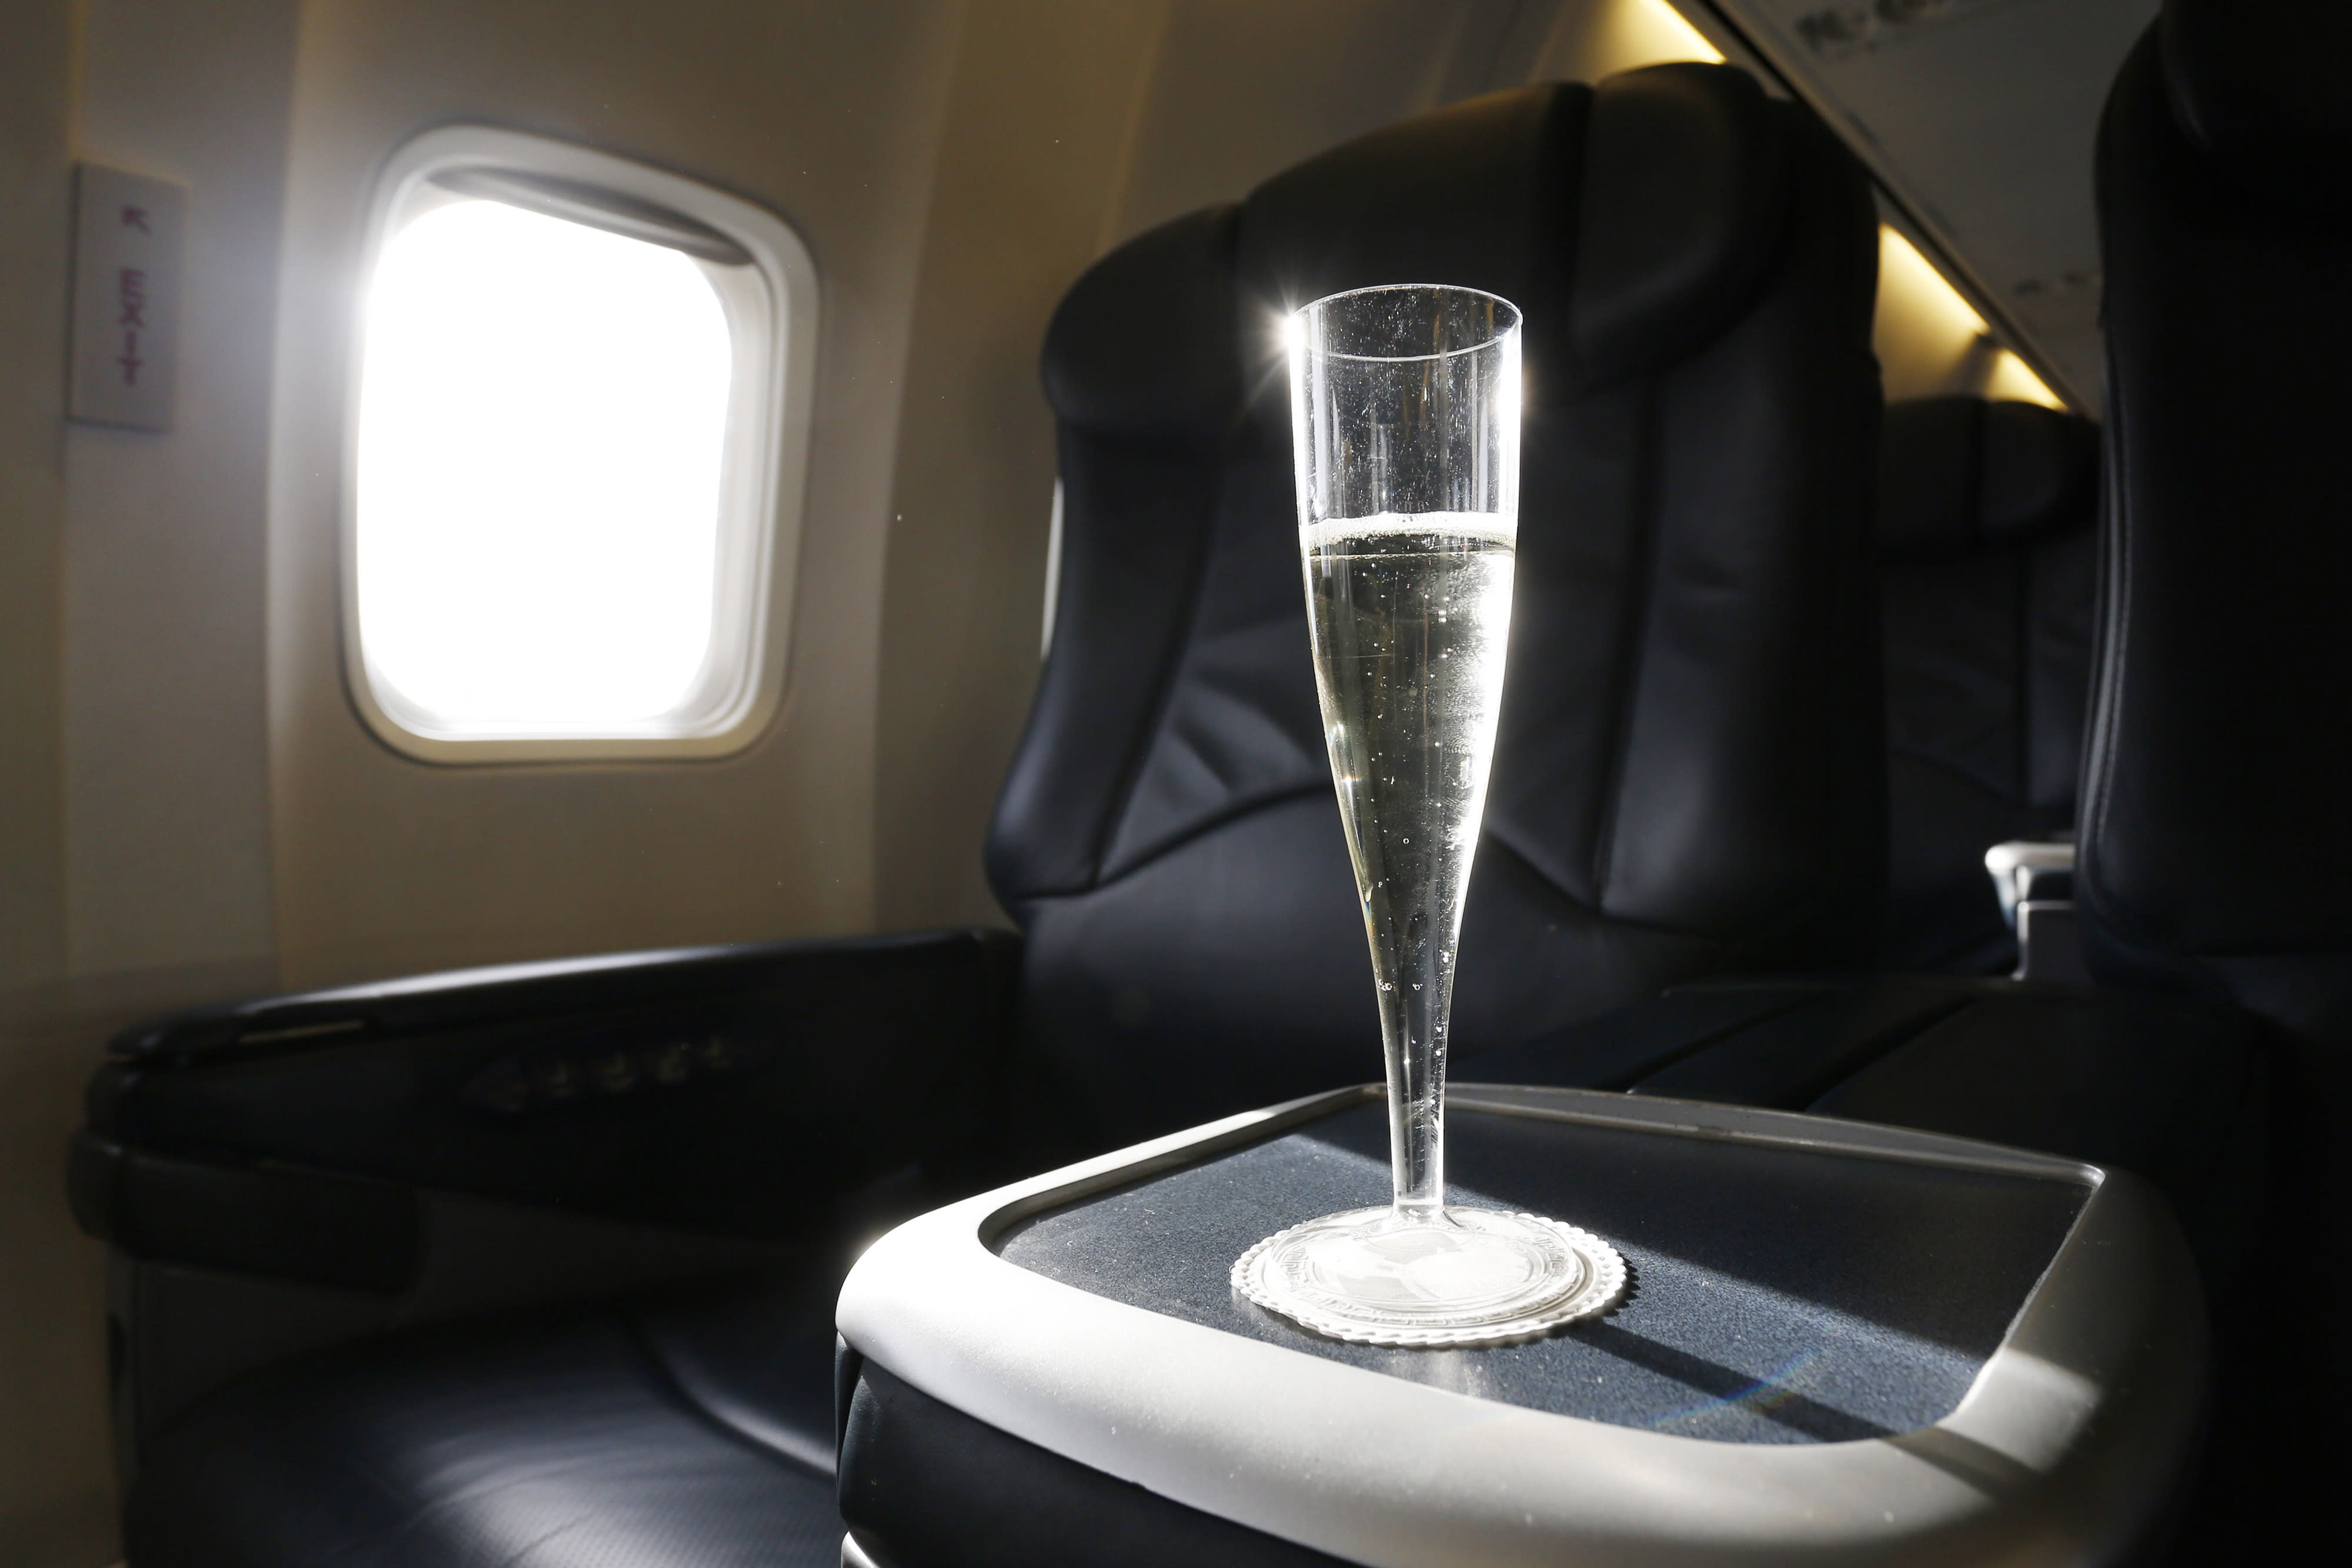 man sues airline because he got sparkling wine not champagne on flight